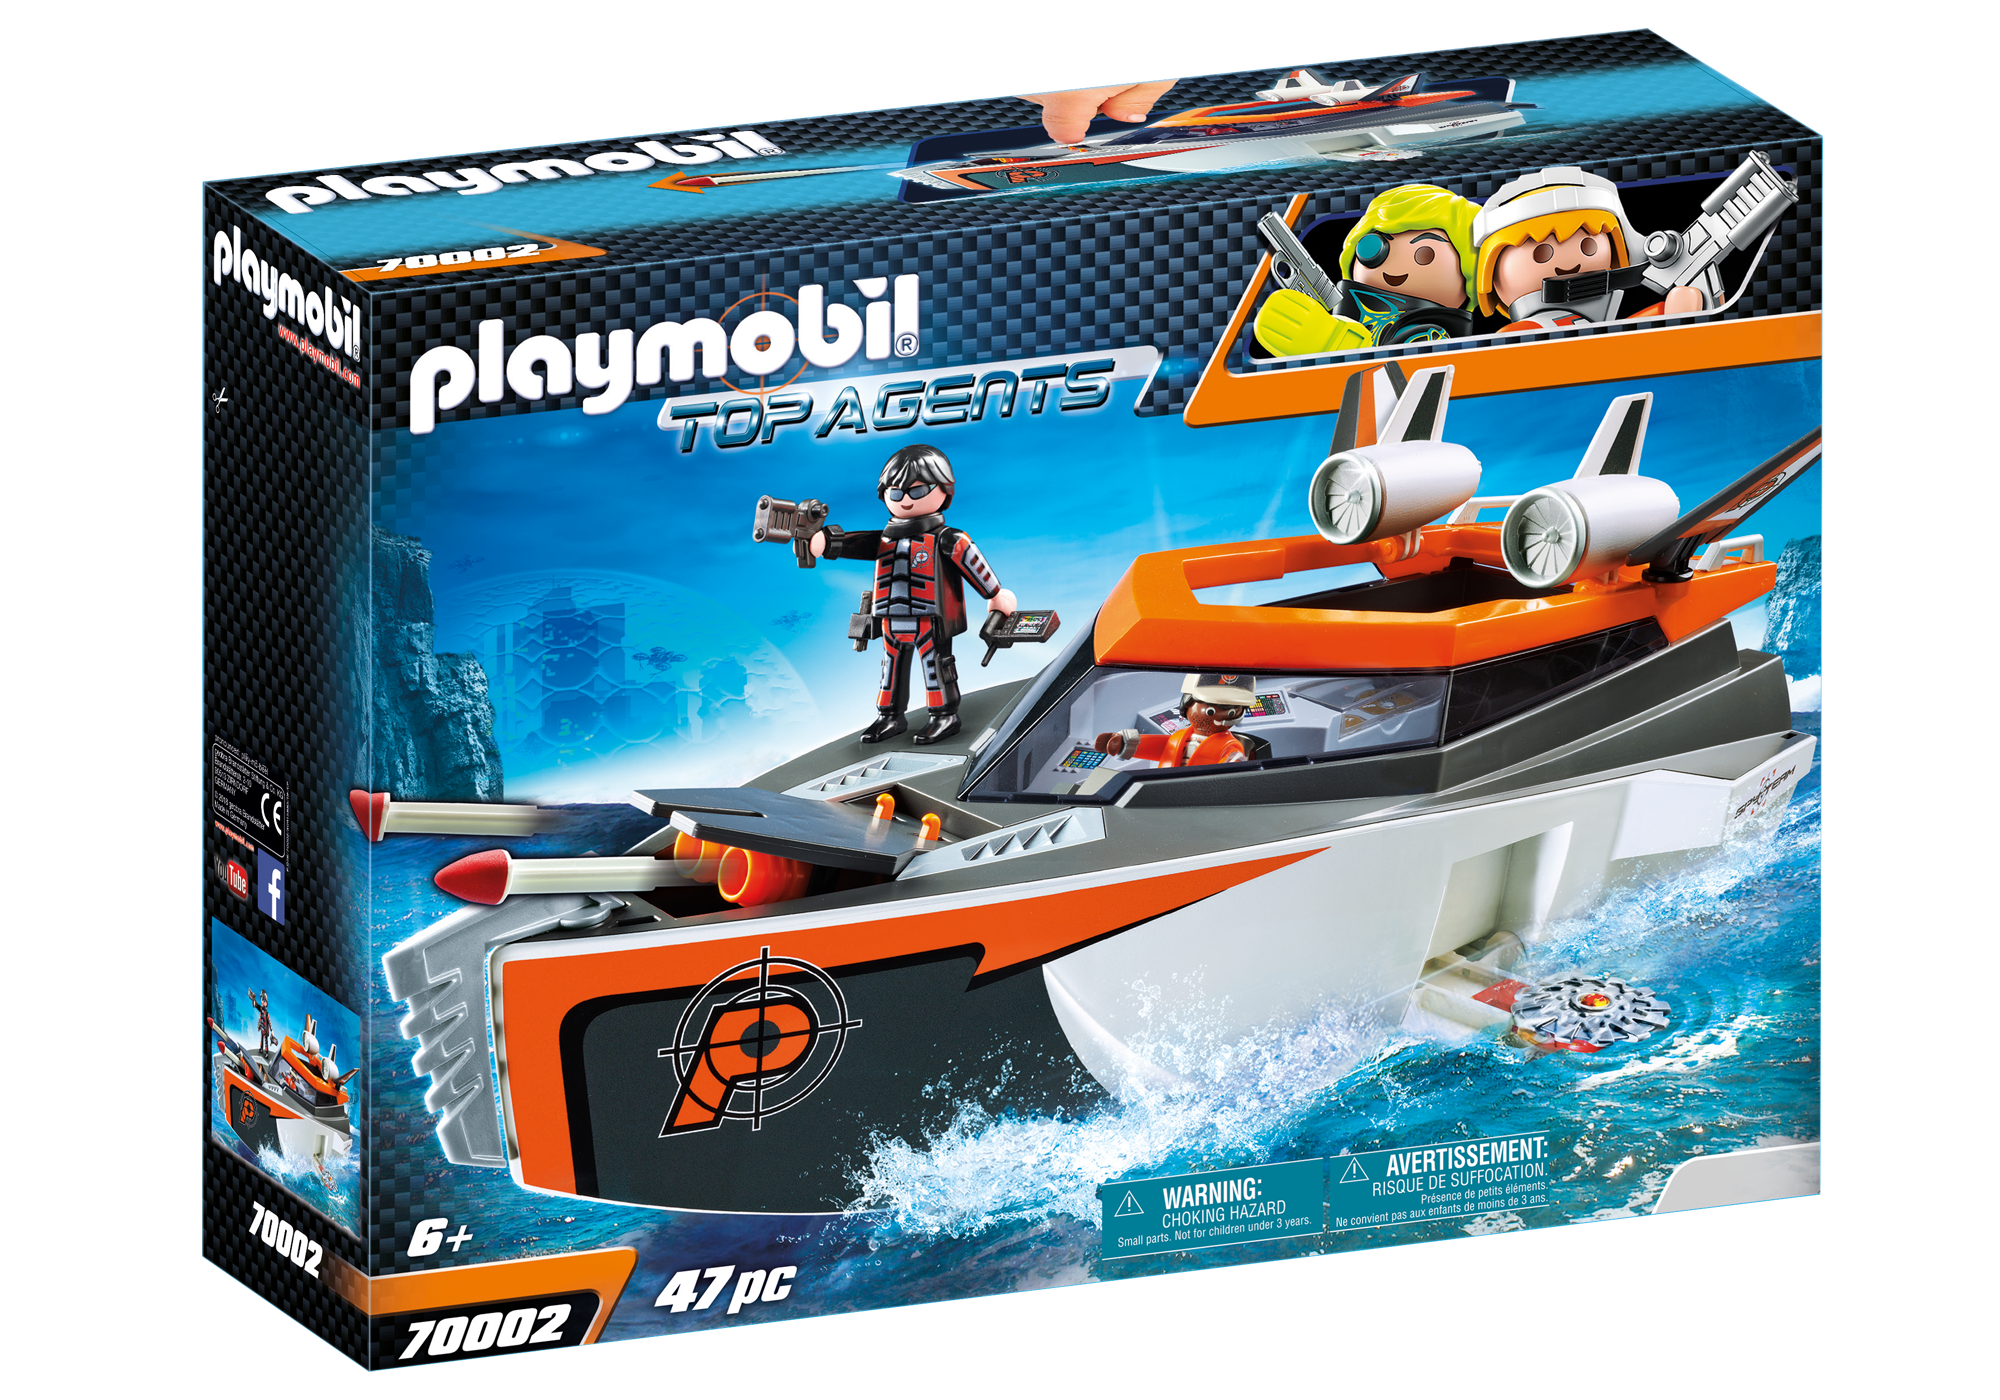 http://media.playmobil.com/i/playmobil/70002_product_box_front